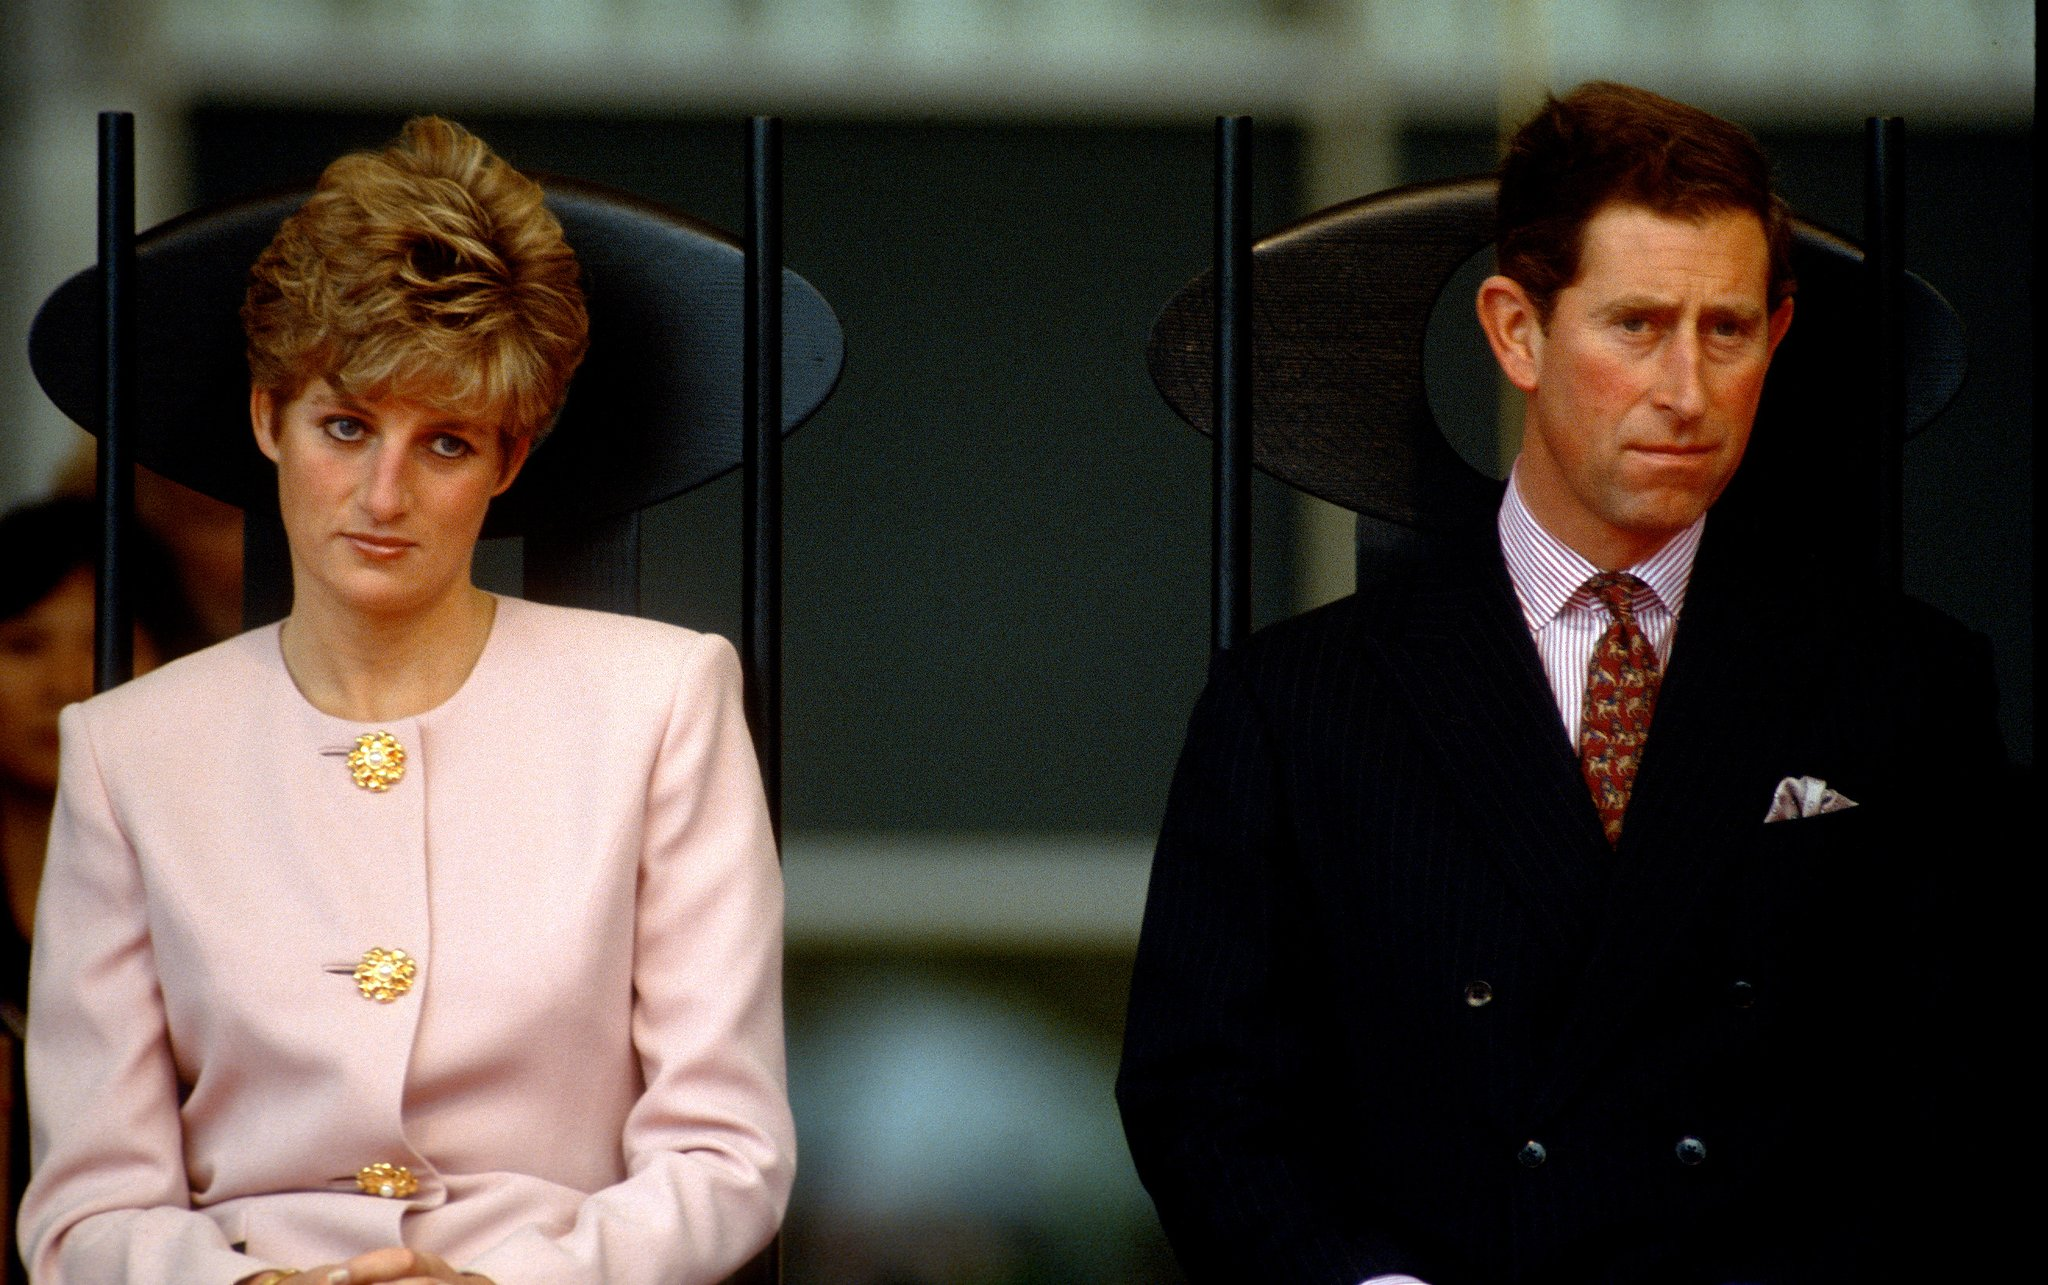 Prince Charles and Princess Diana Divorce